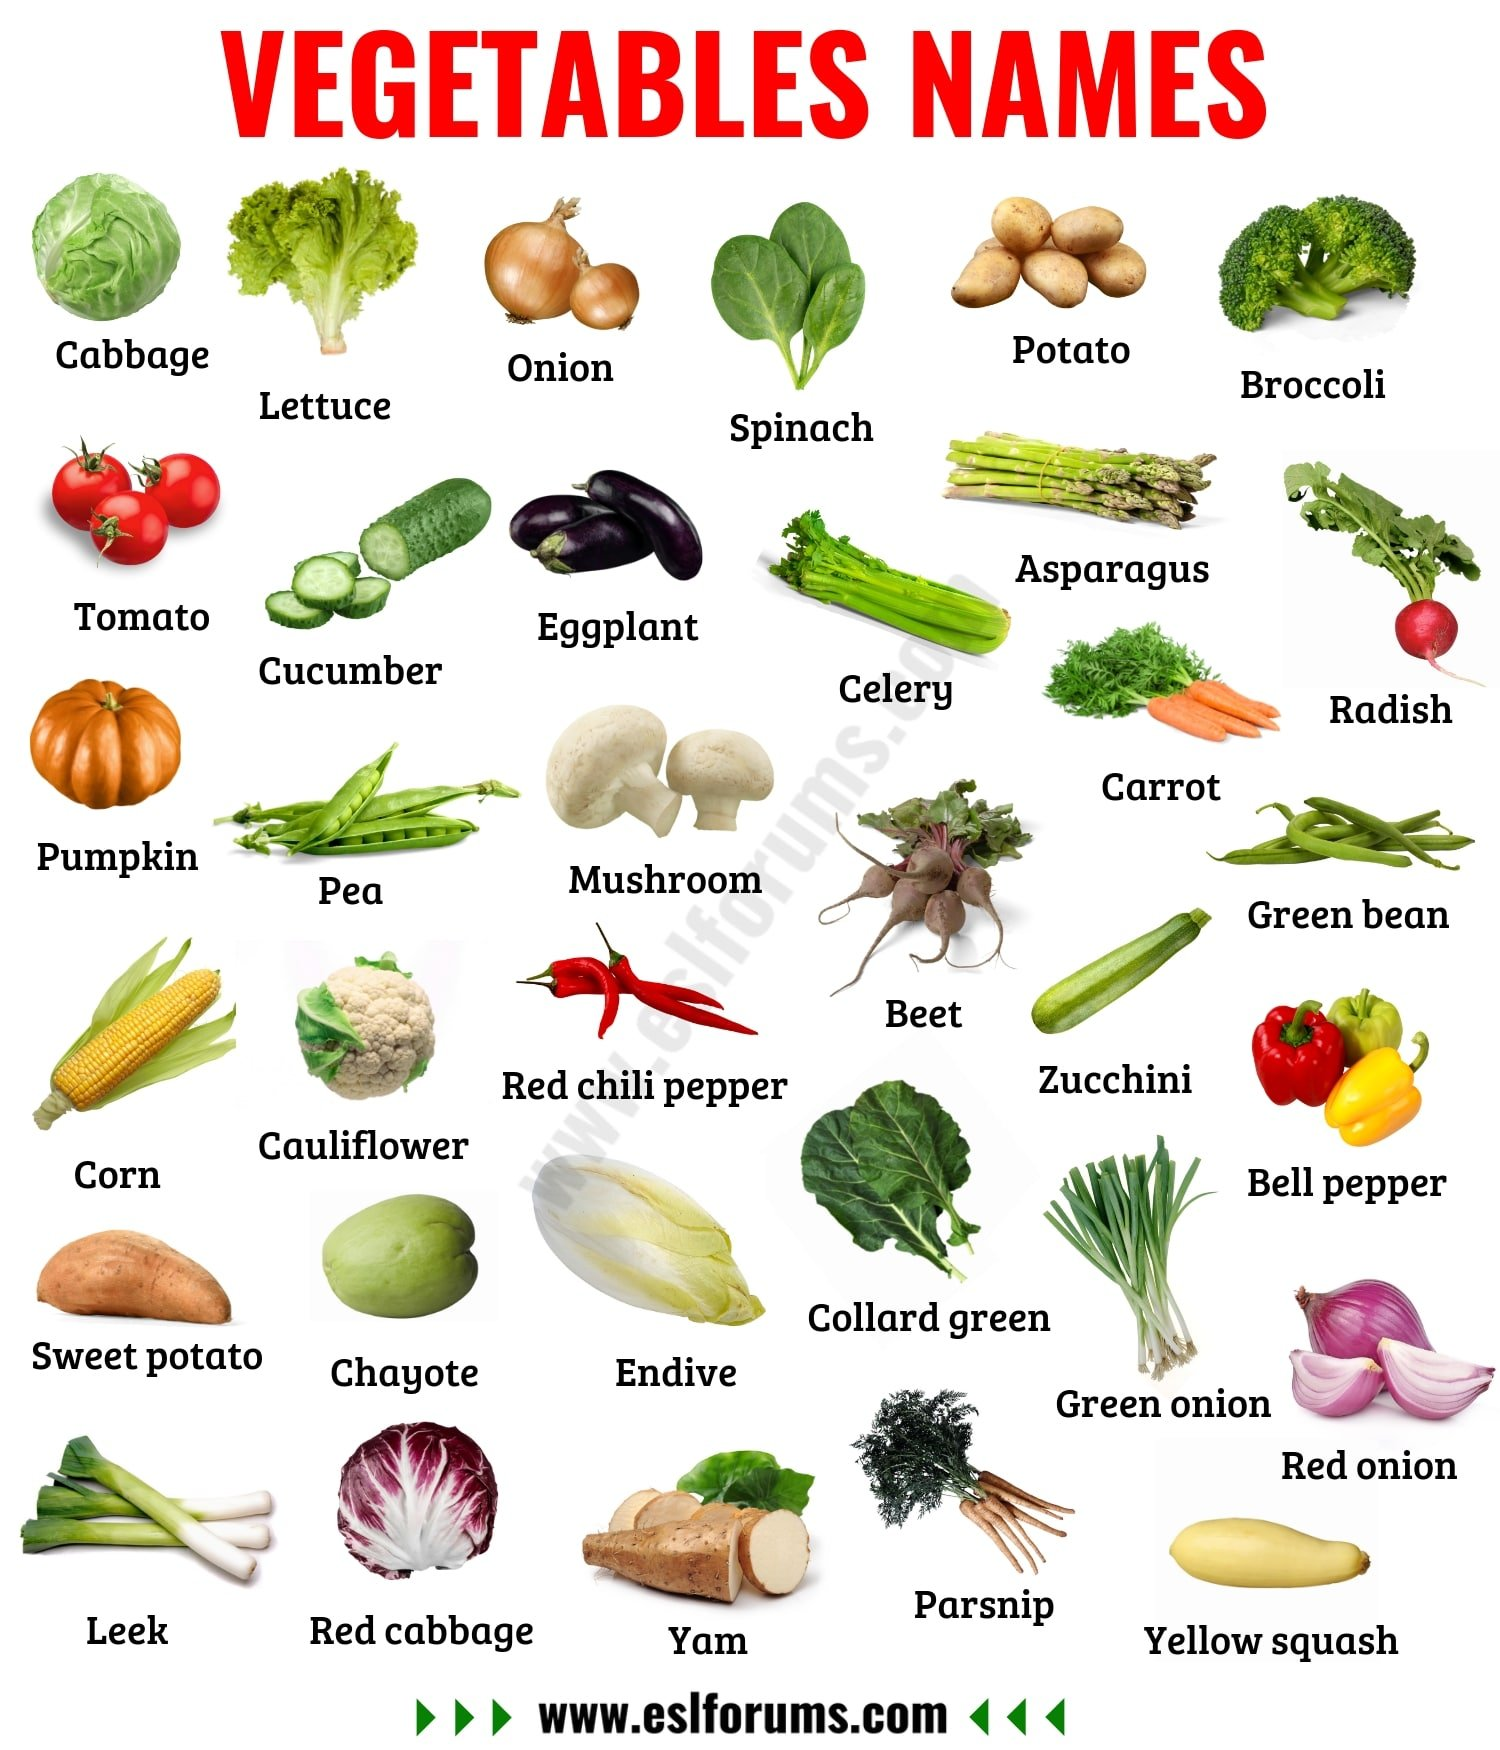 List of Vegetables: Useful Names of Vegetables with the Picture!